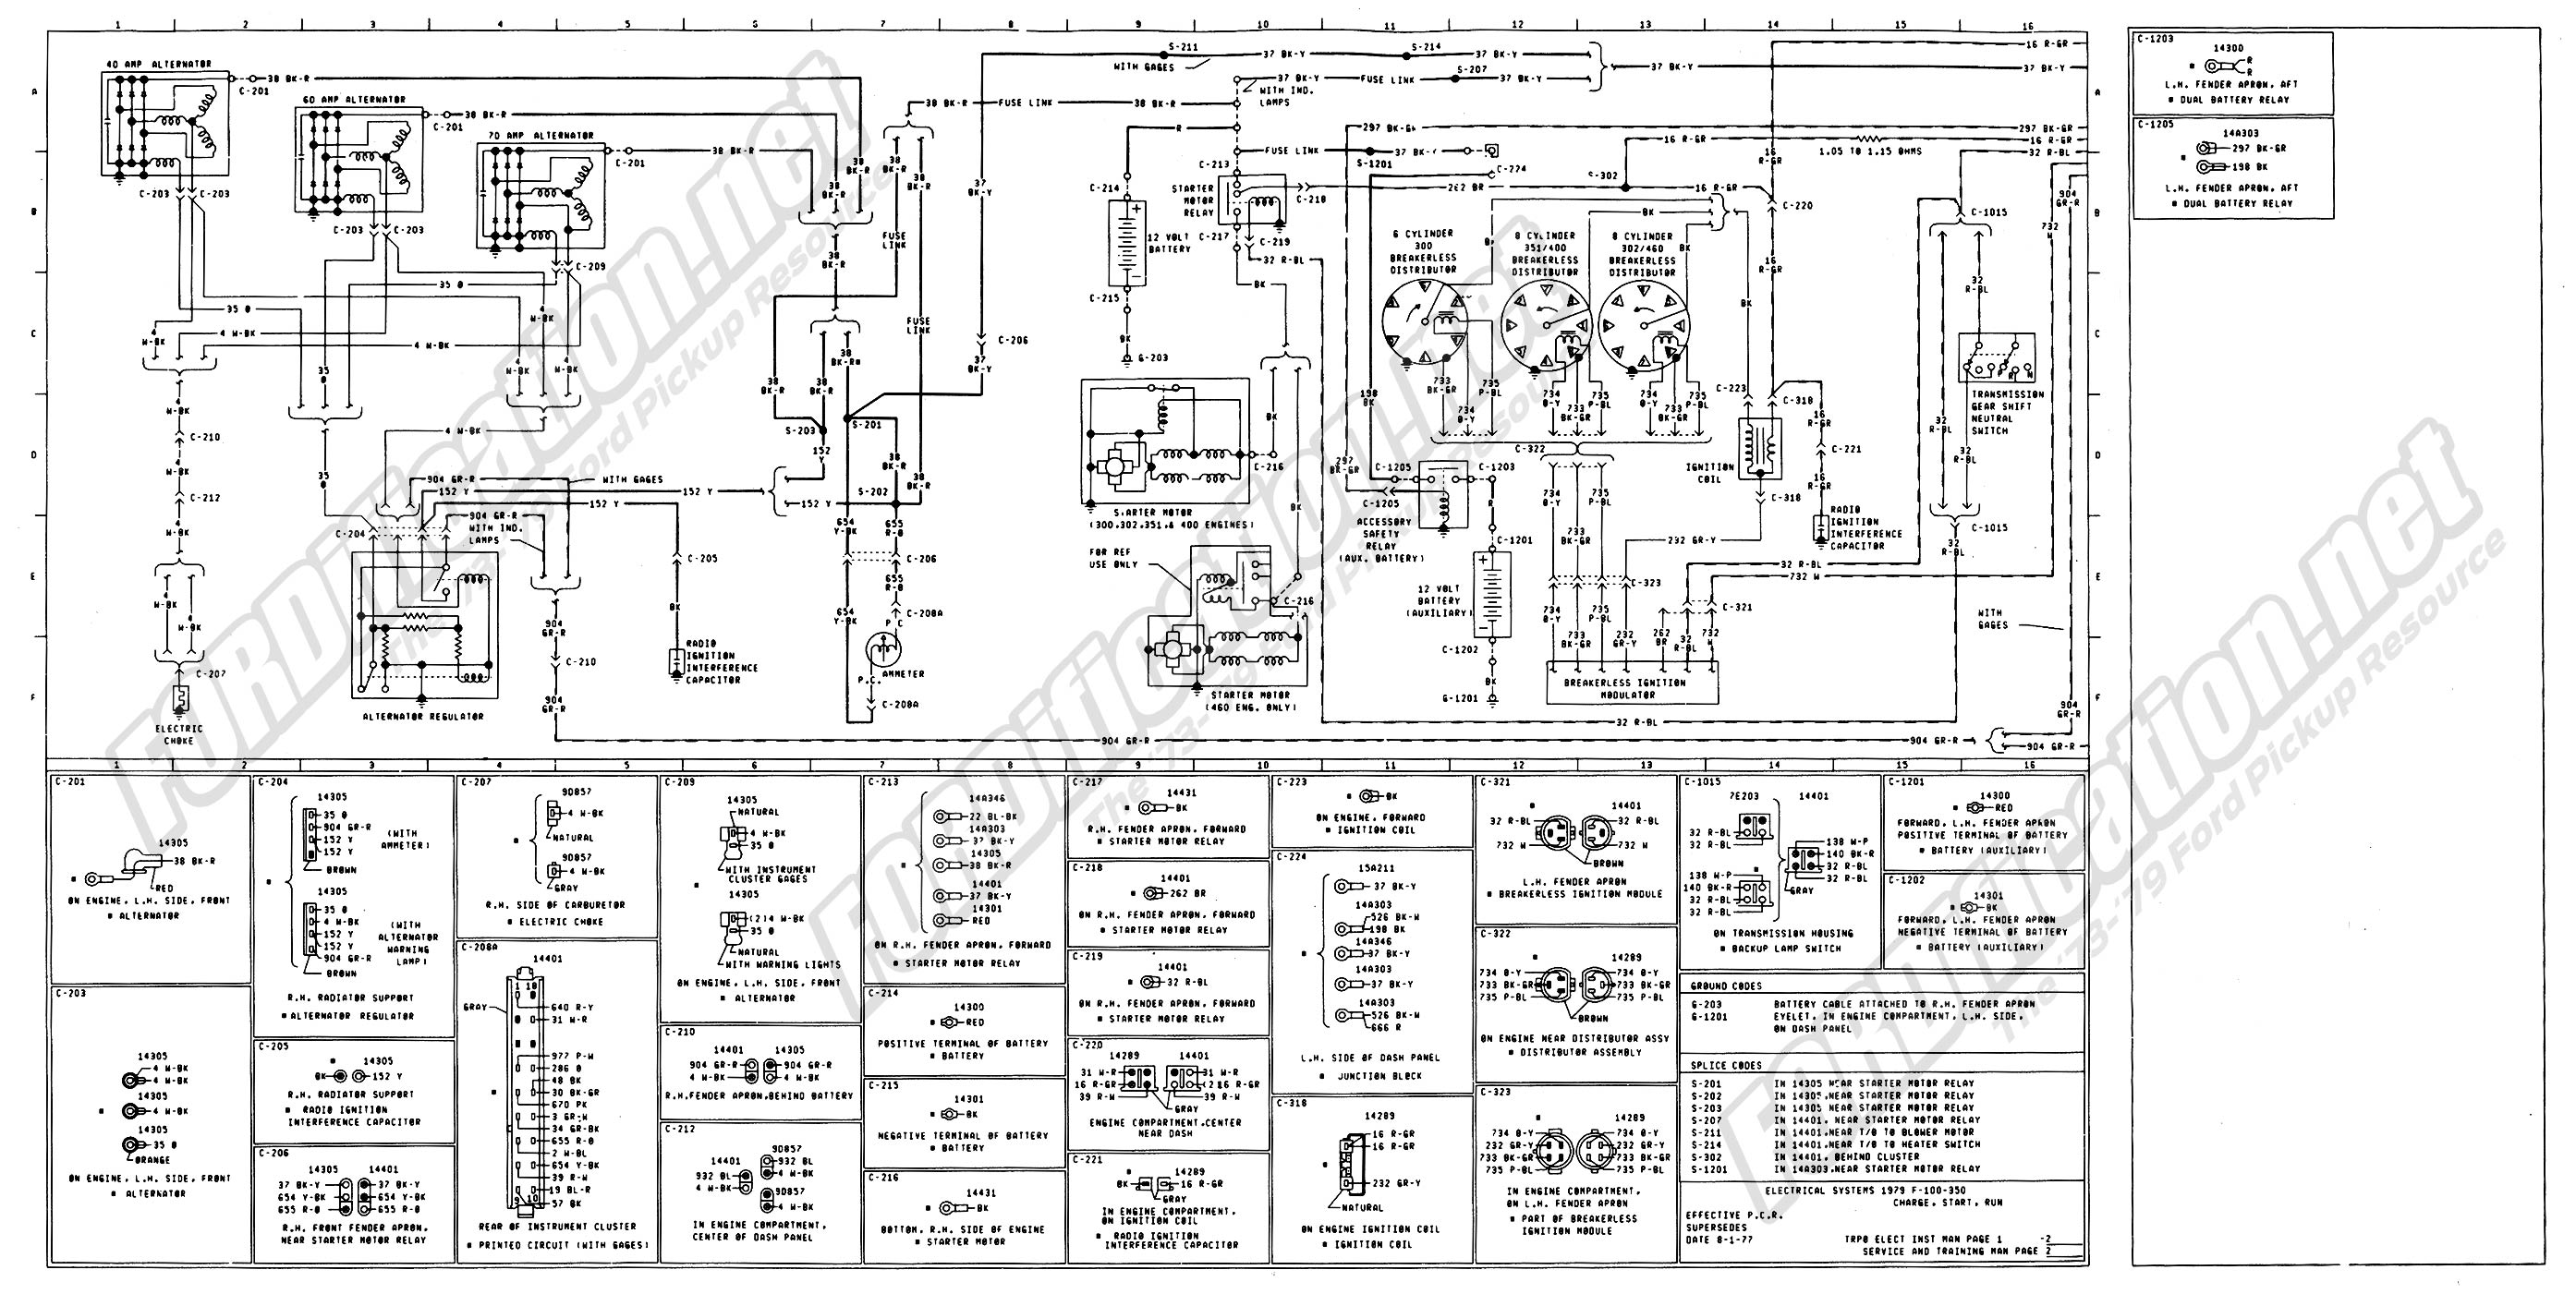 wiring diagram for 1968 ford f100 pick up